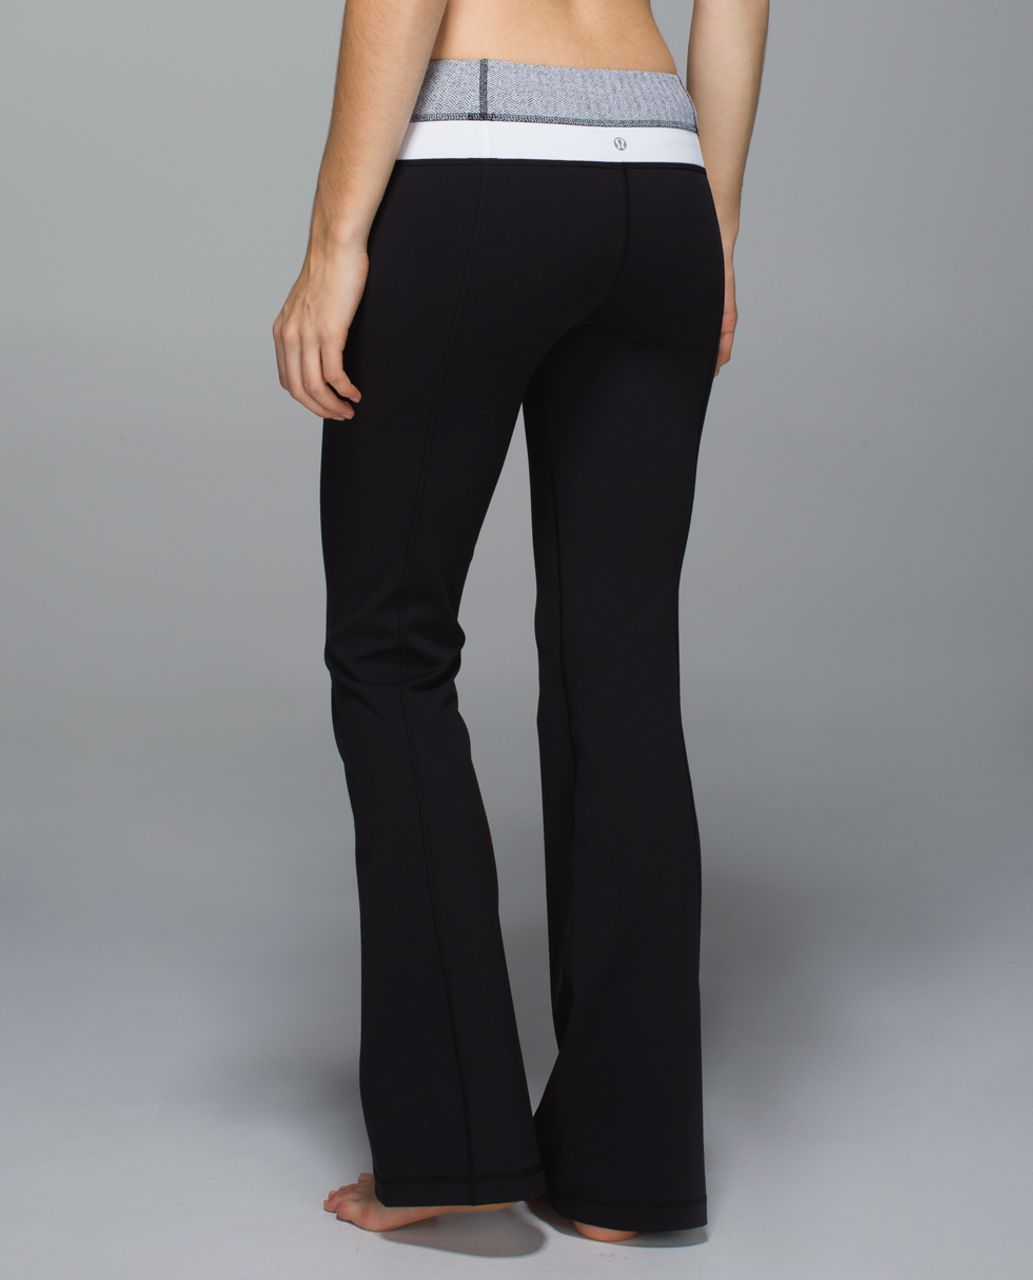 Lululemon Groove Pant *Full-On Luon (Tall) - Black / Heathered Herringbone Black Heathered Black / White